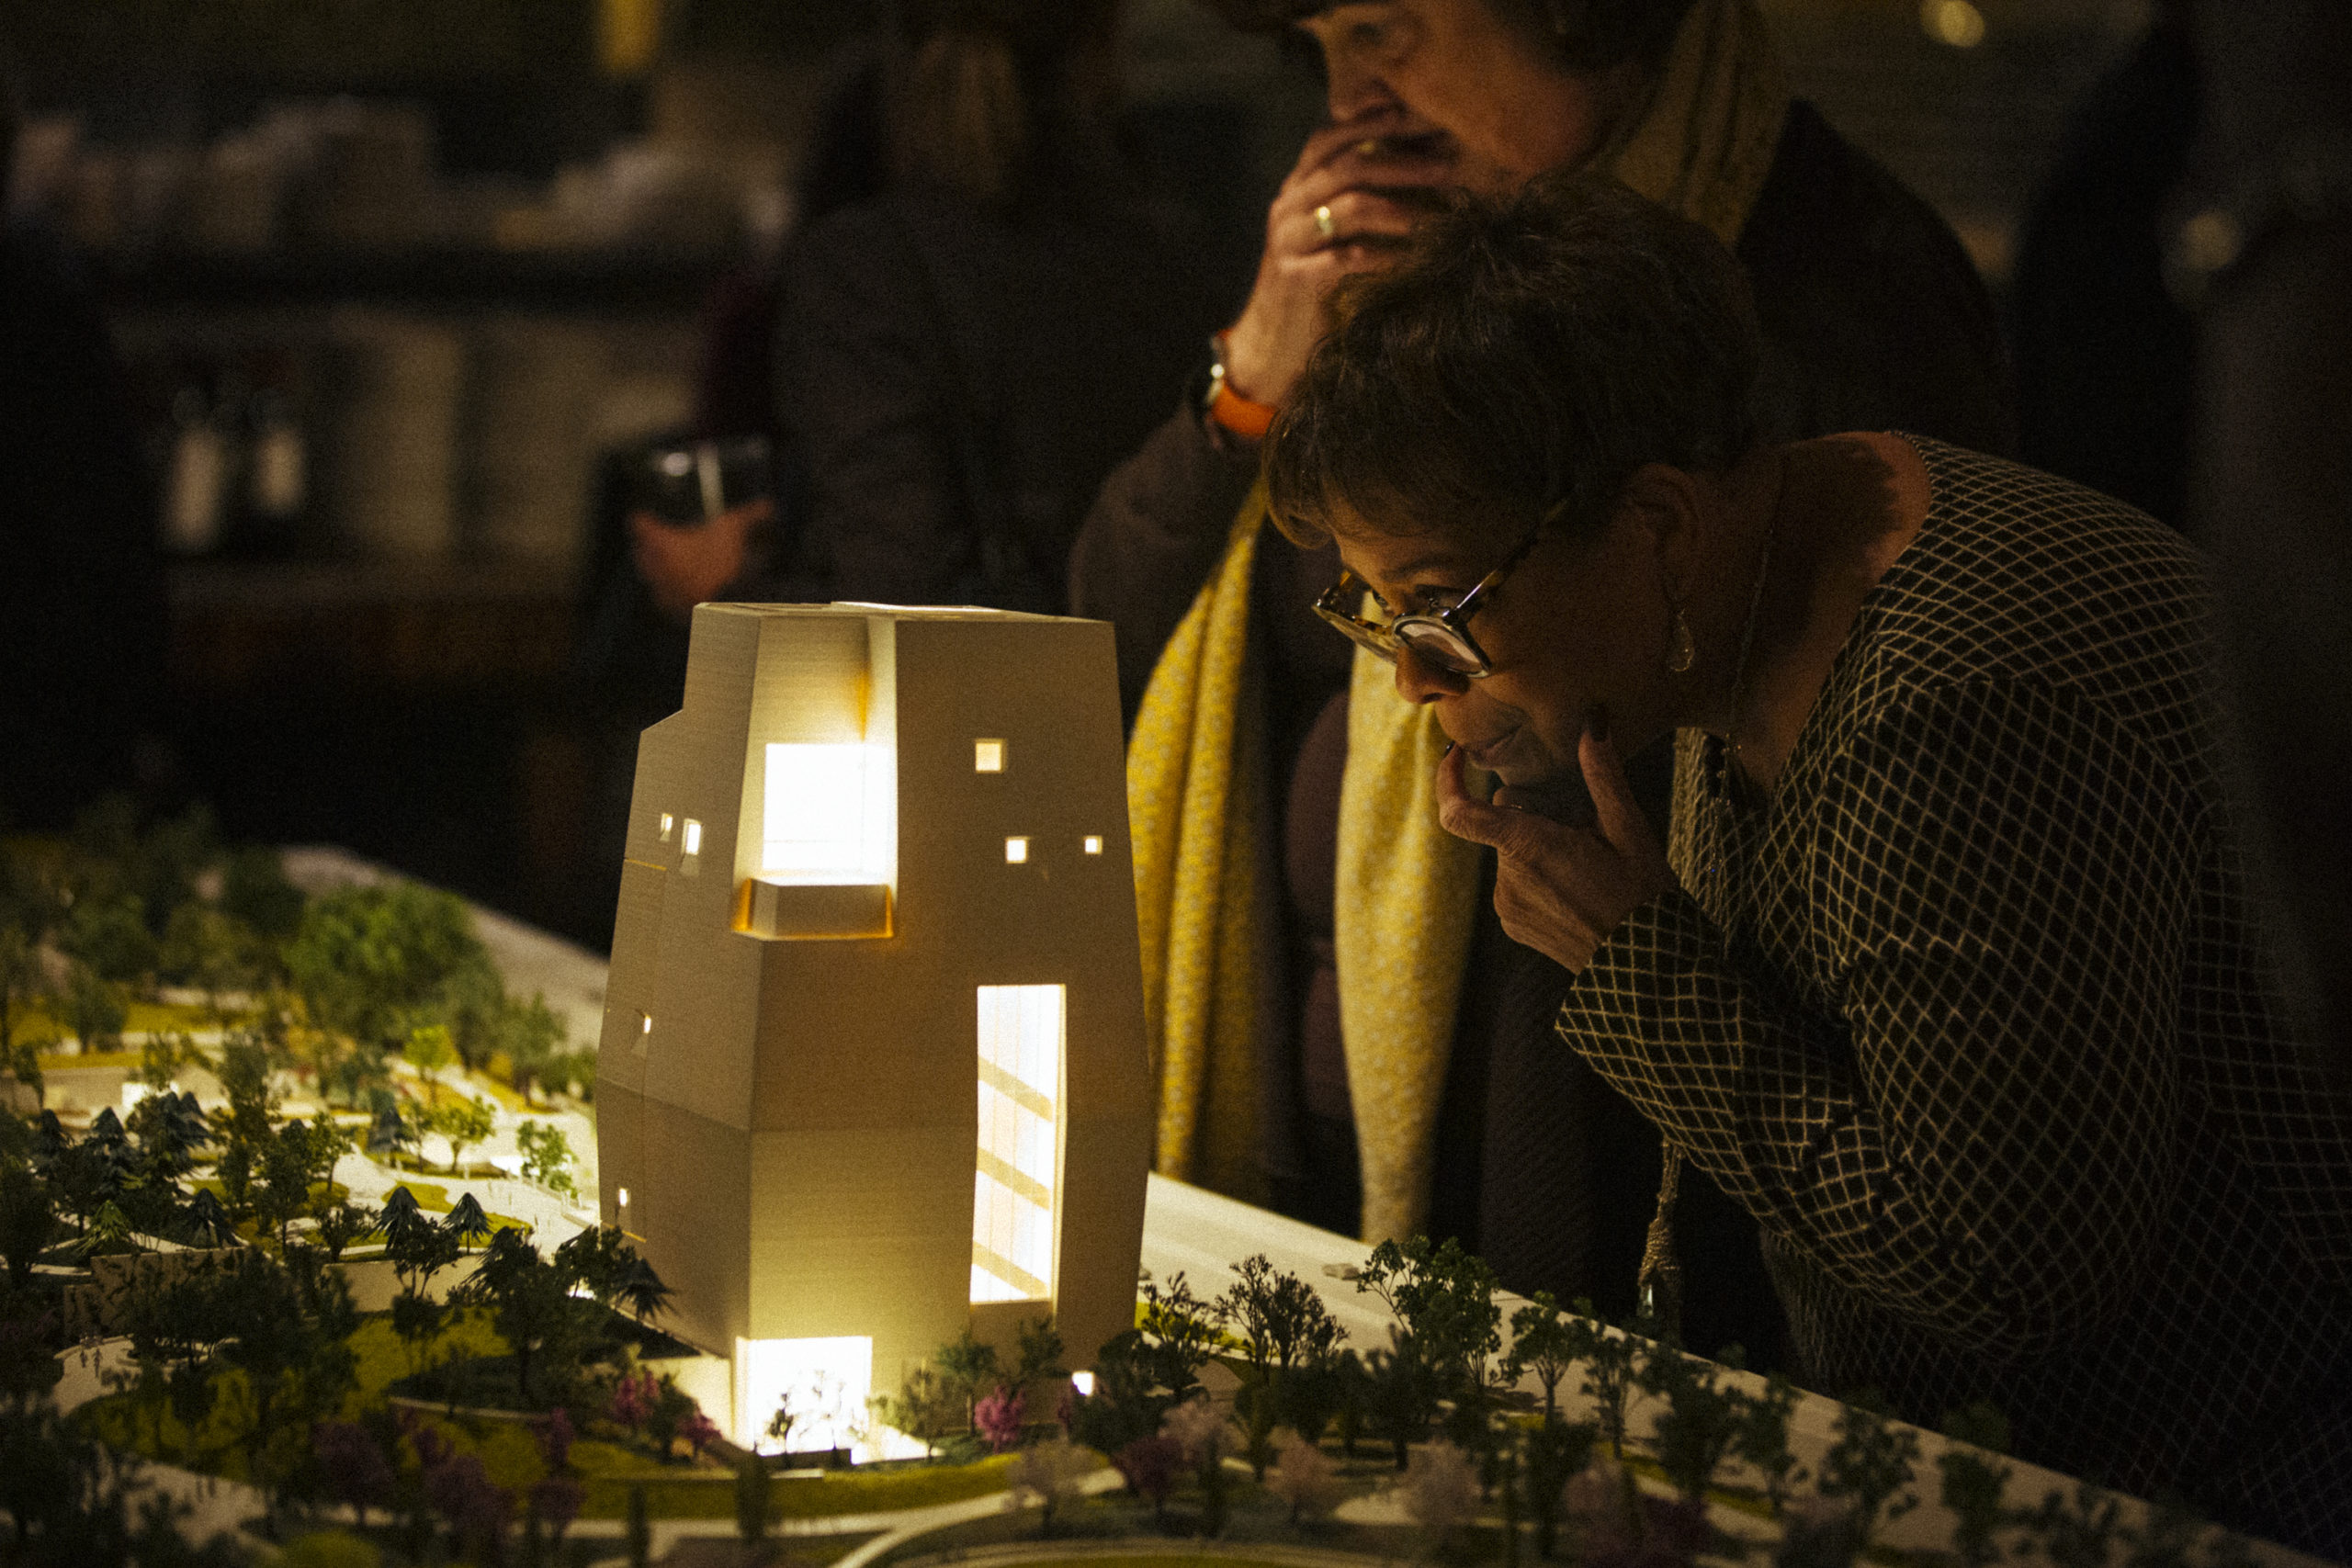 Two women peer into the lit windows of the Obama Presidential Center model.